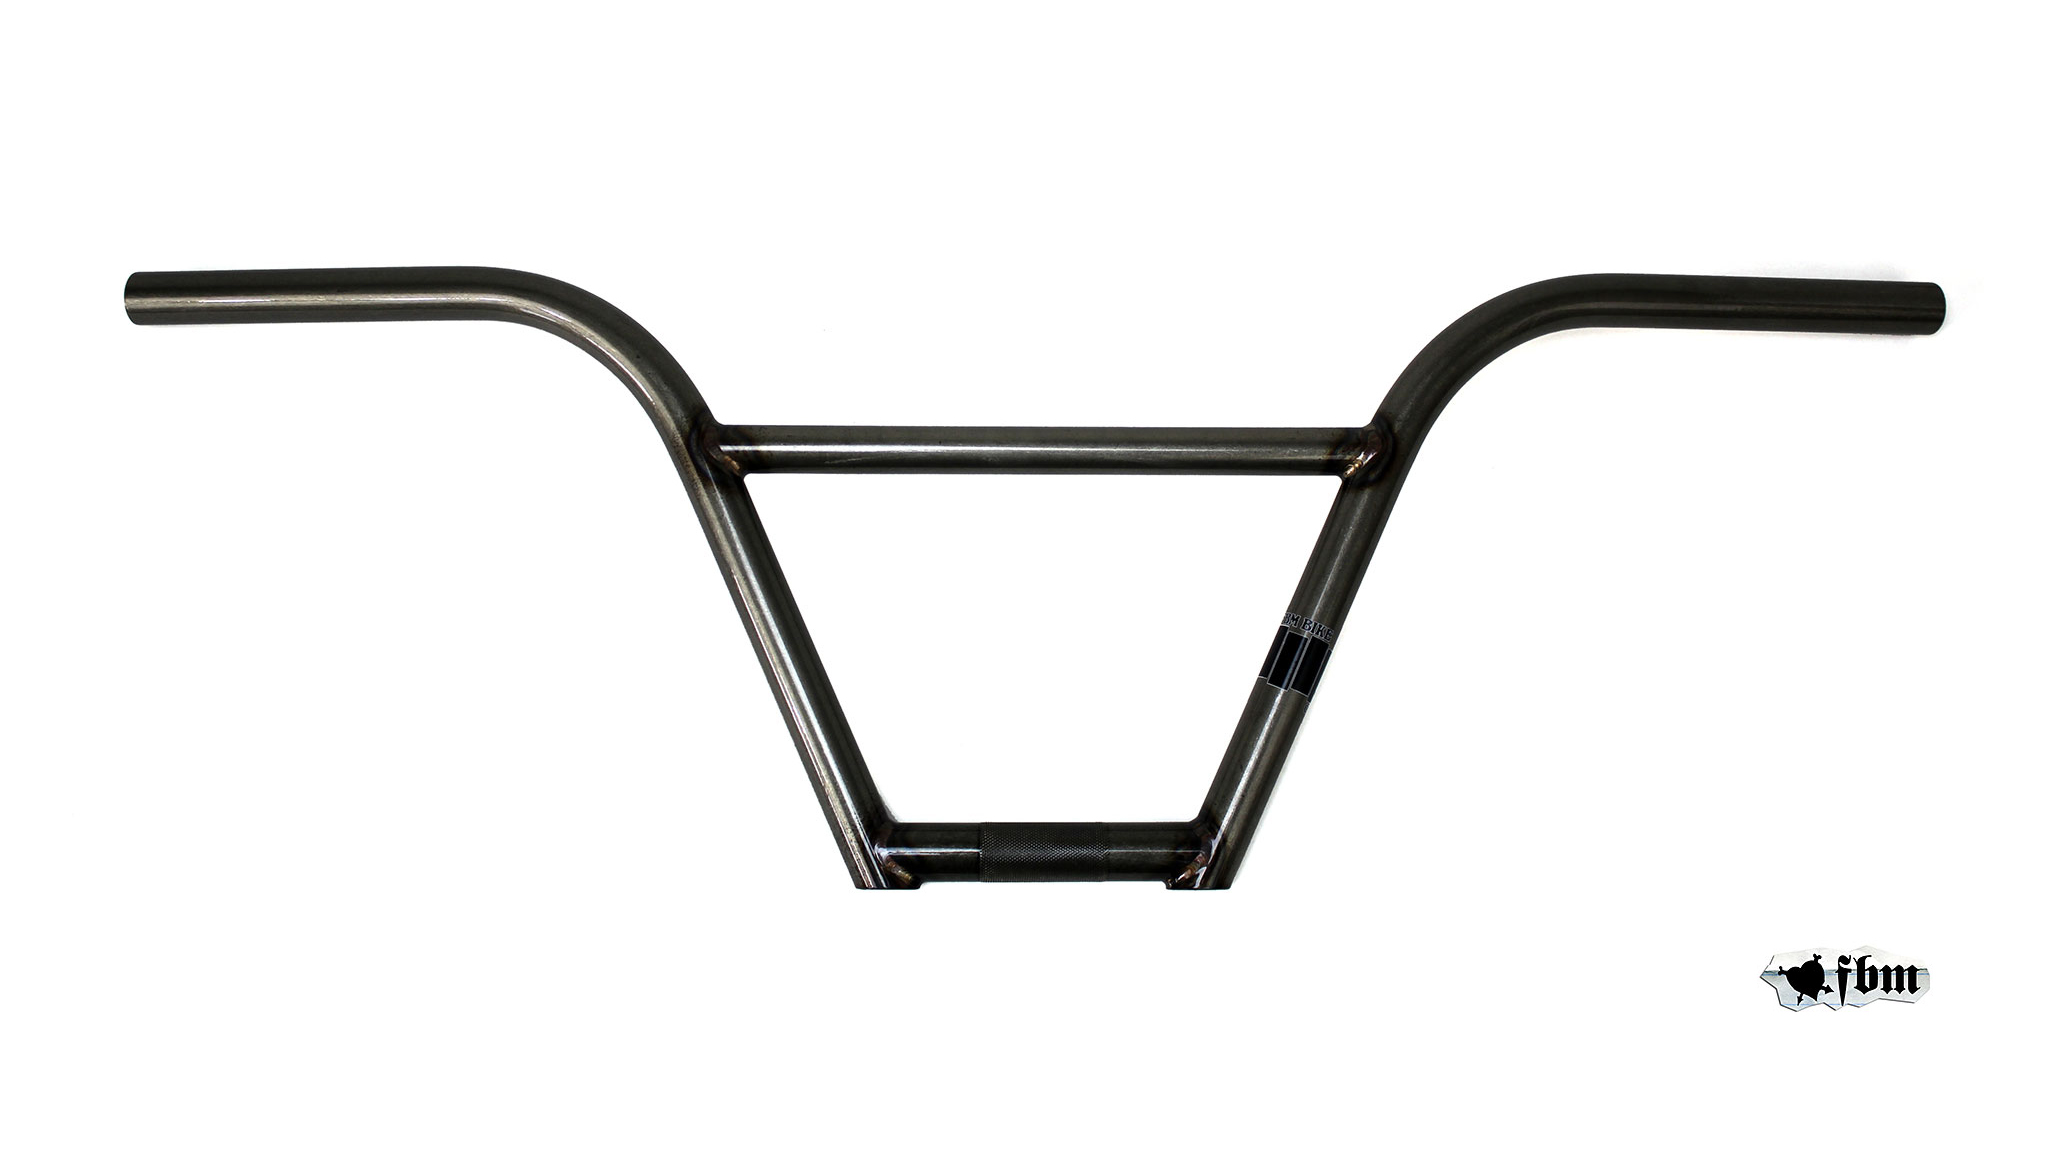 FBM Black Flag bars